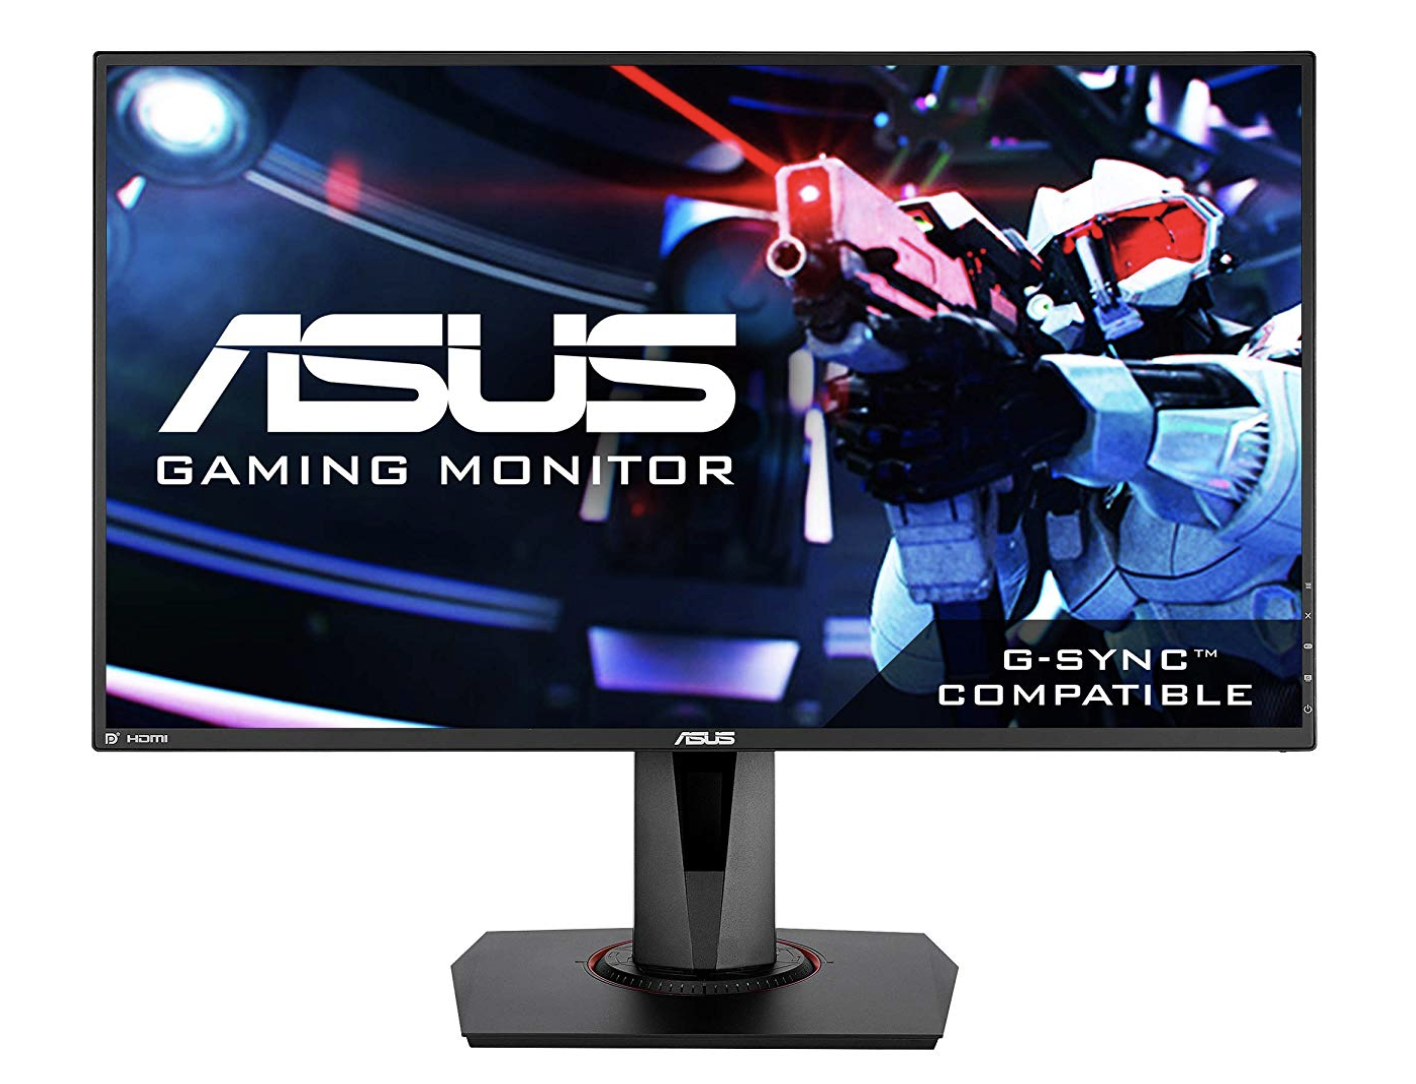 ASUS - My monitor of choice. Great overall value and size!